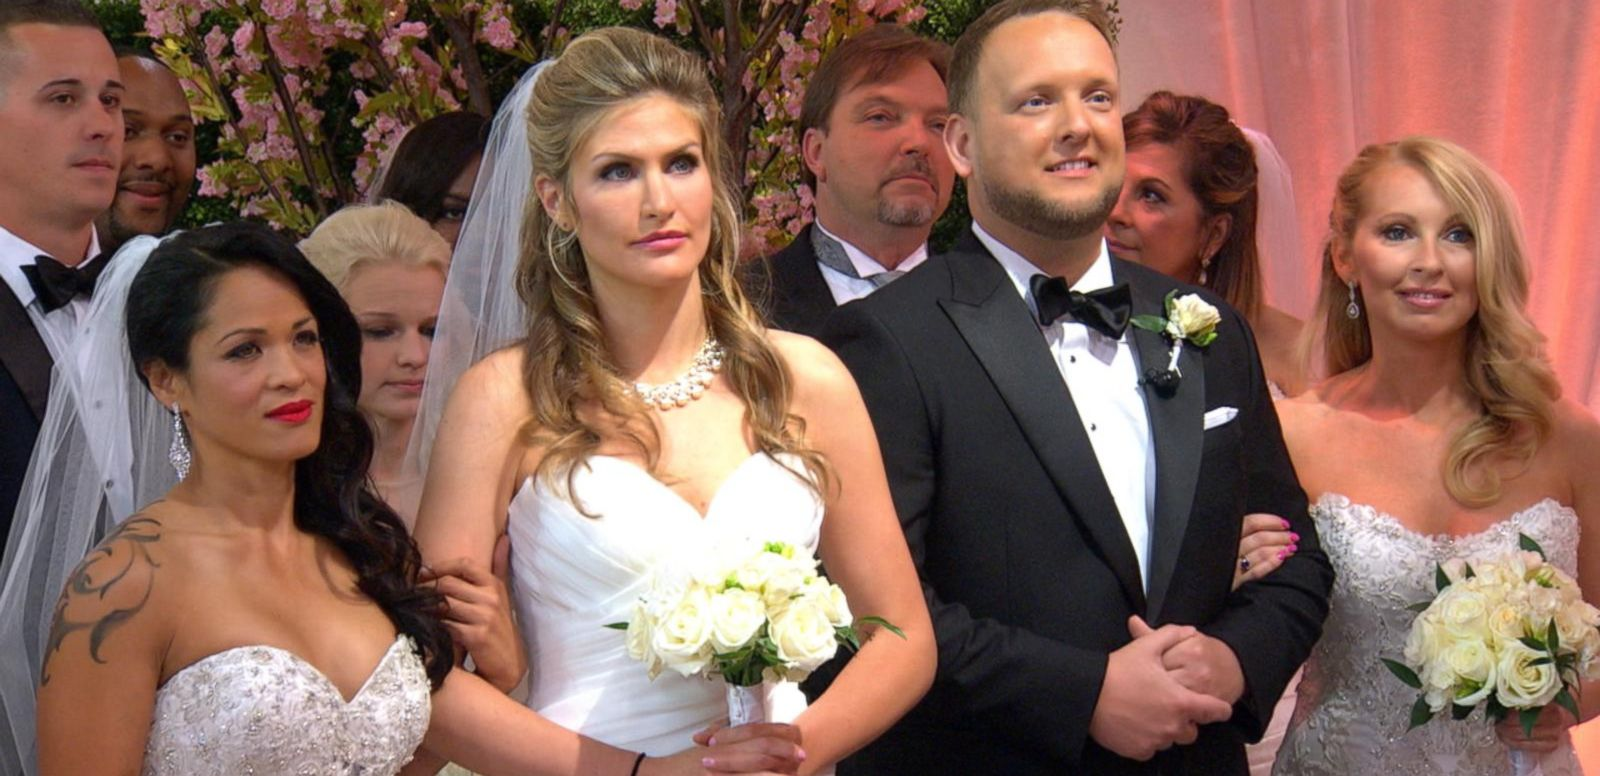 VIDEO: 'GMA' Wide World of Weddings: 16 Couples Get Married Live in Times Square